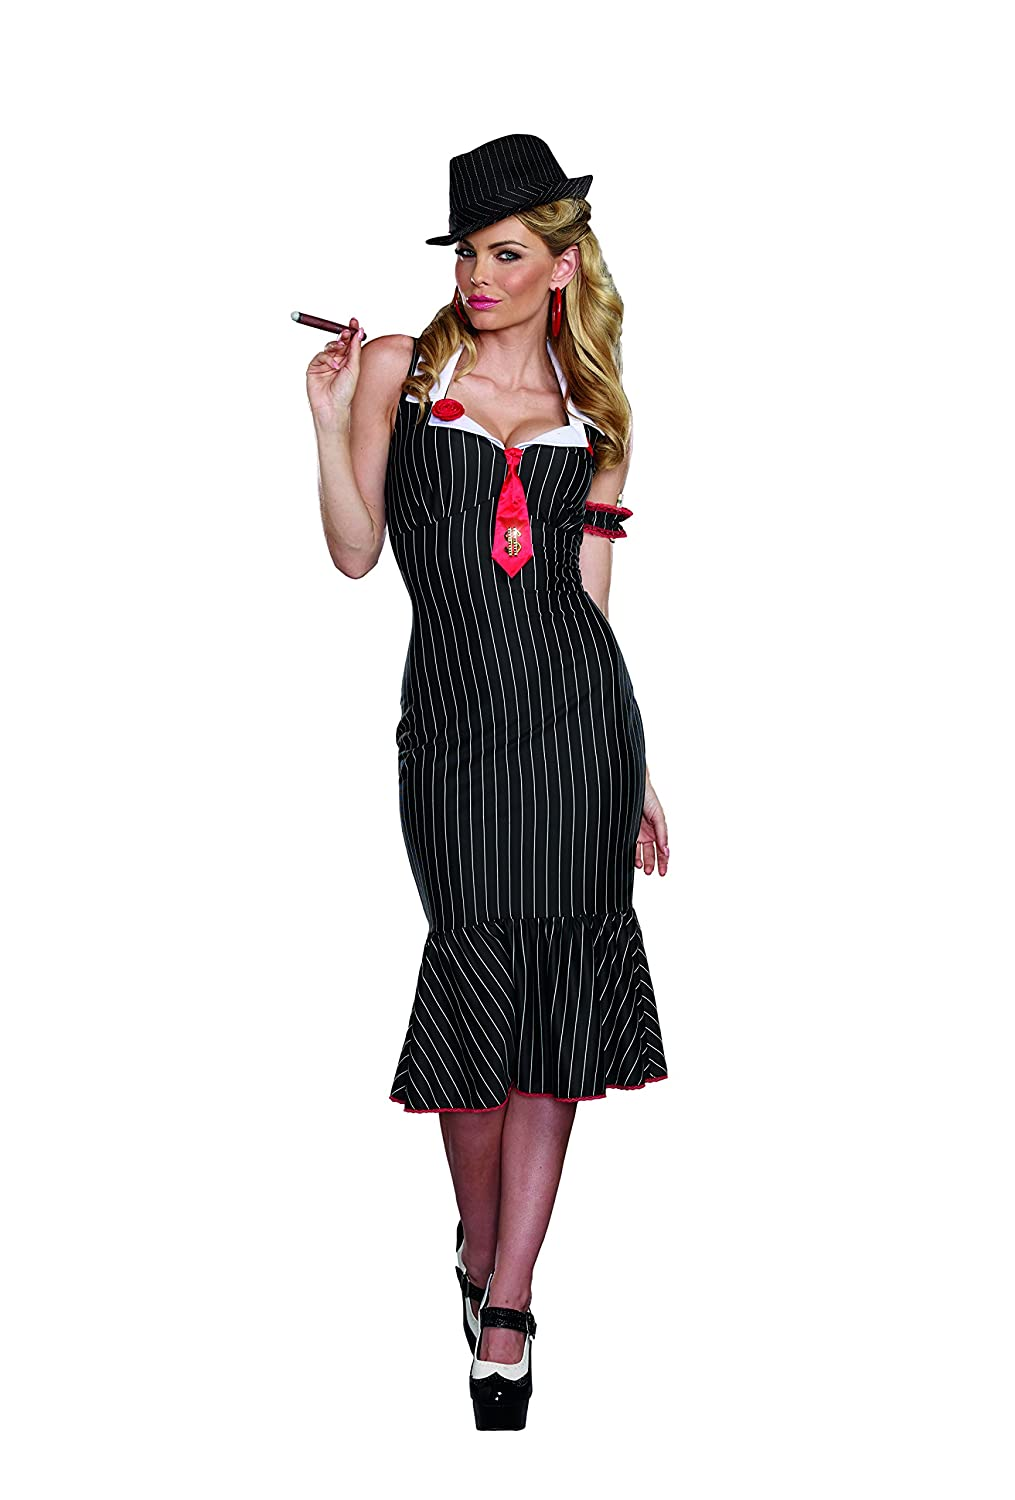 Flapper Costumes, Flapper Girl Costume Dreamgirl Womens Deadly Dames Pinstripe Gangster Costume $67.00 AT vintagedancer.com